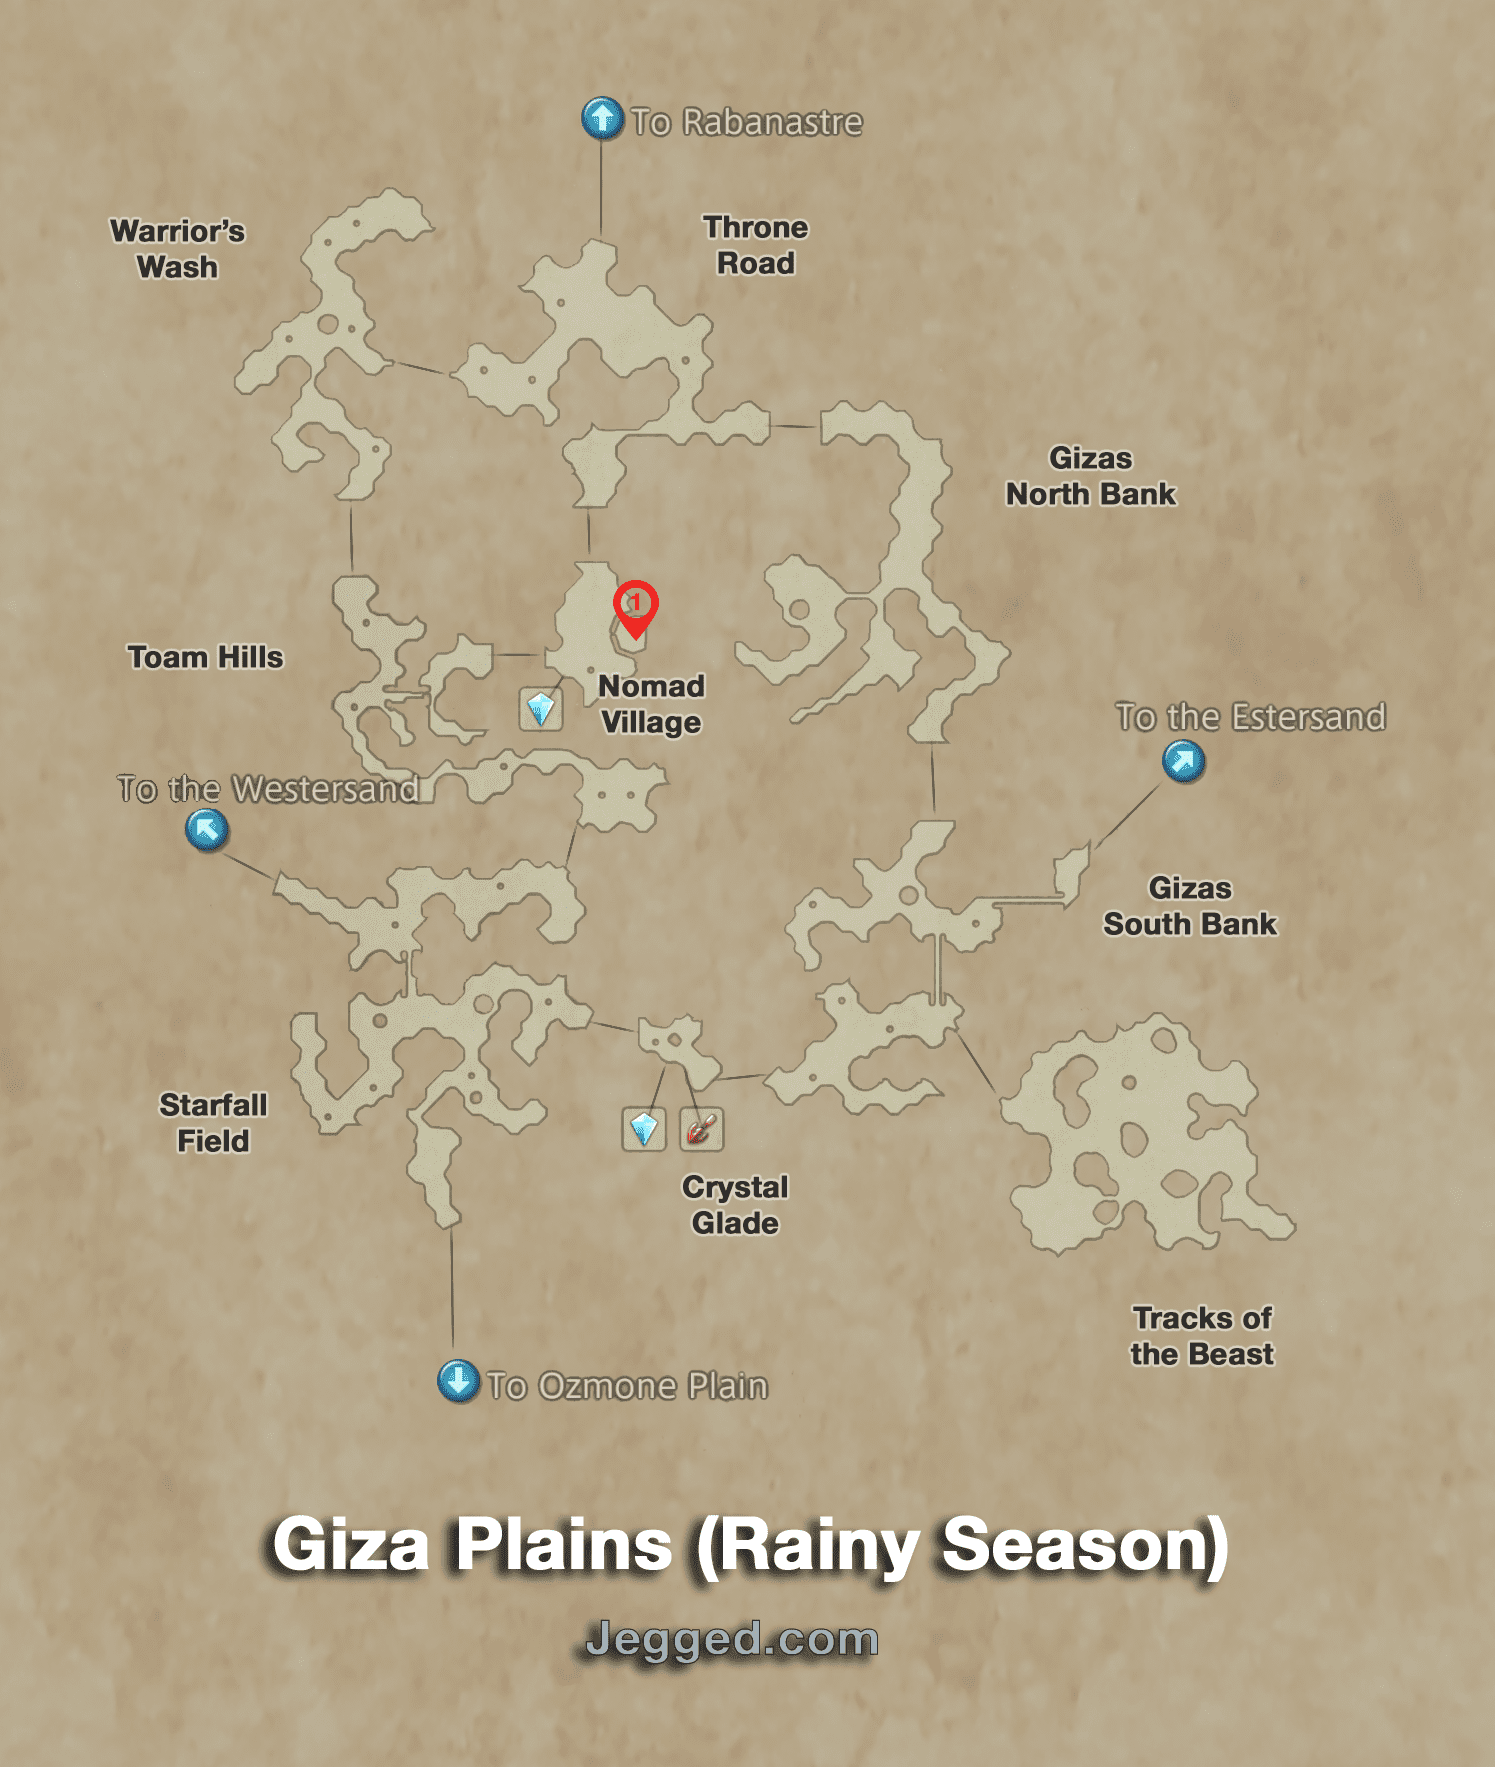 Map of the Giza Plains (Rainy Season)